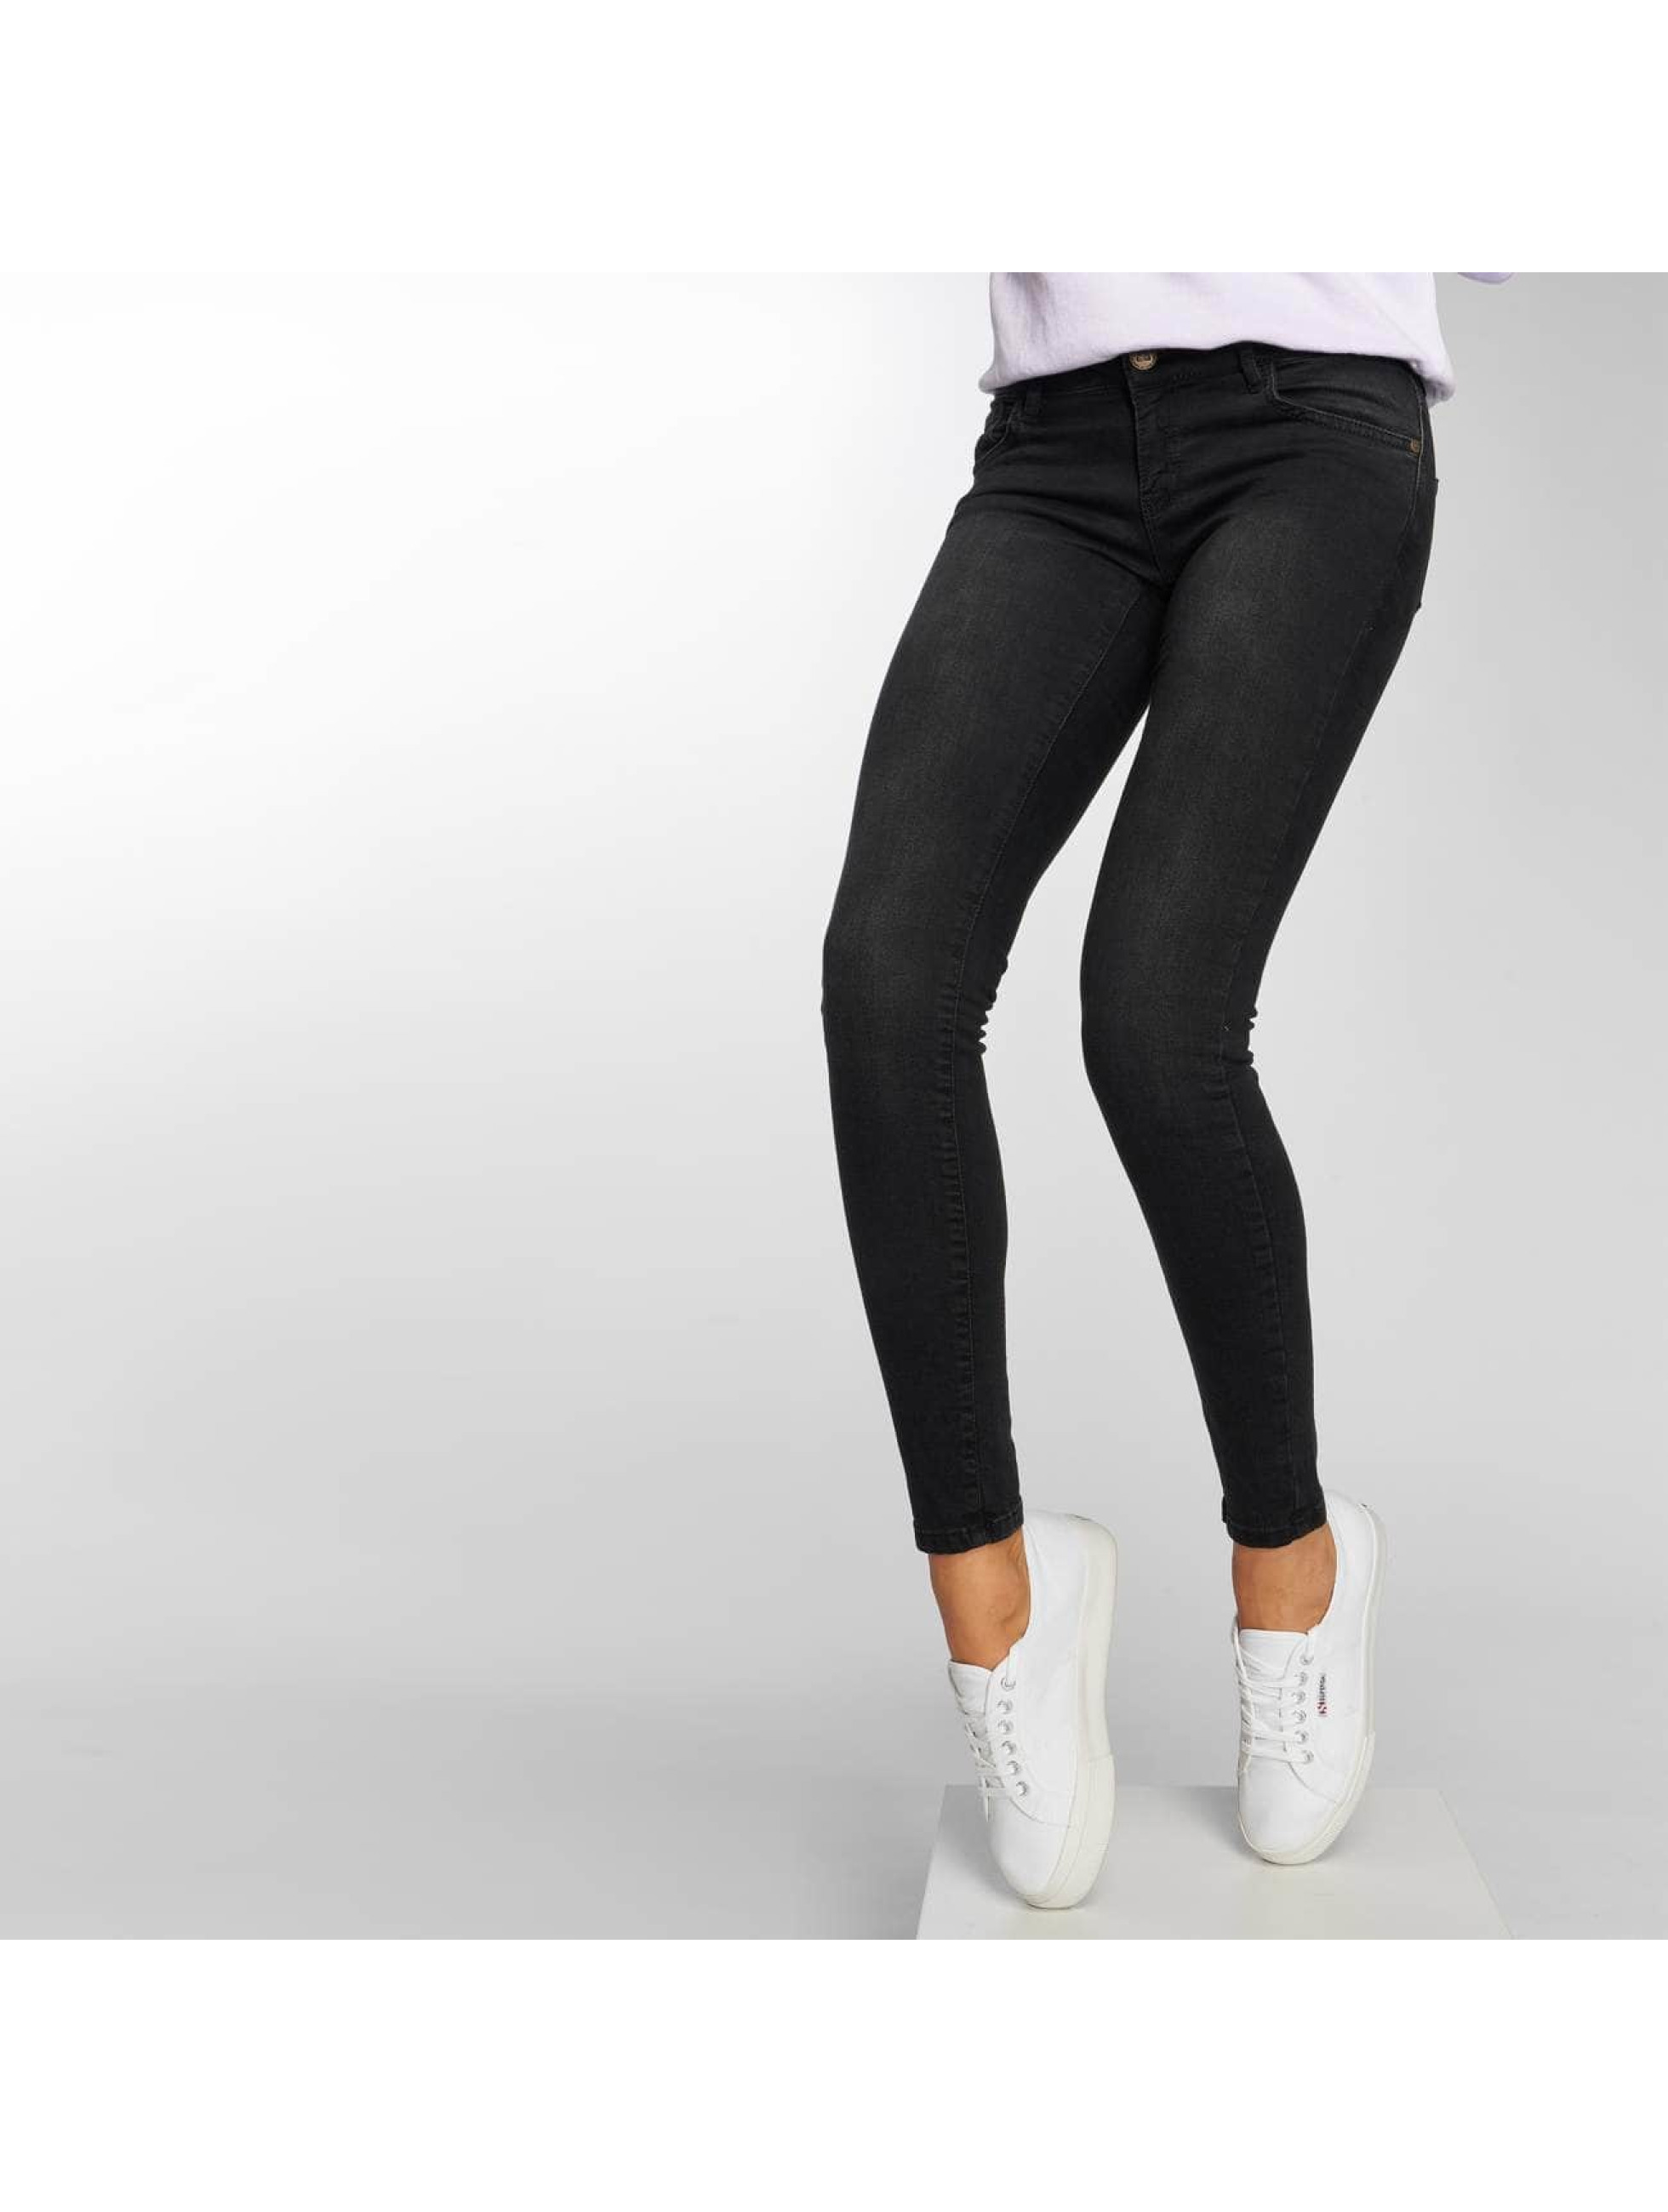 Just Rhyse / Skinny Jeans Buttercup in black W 26